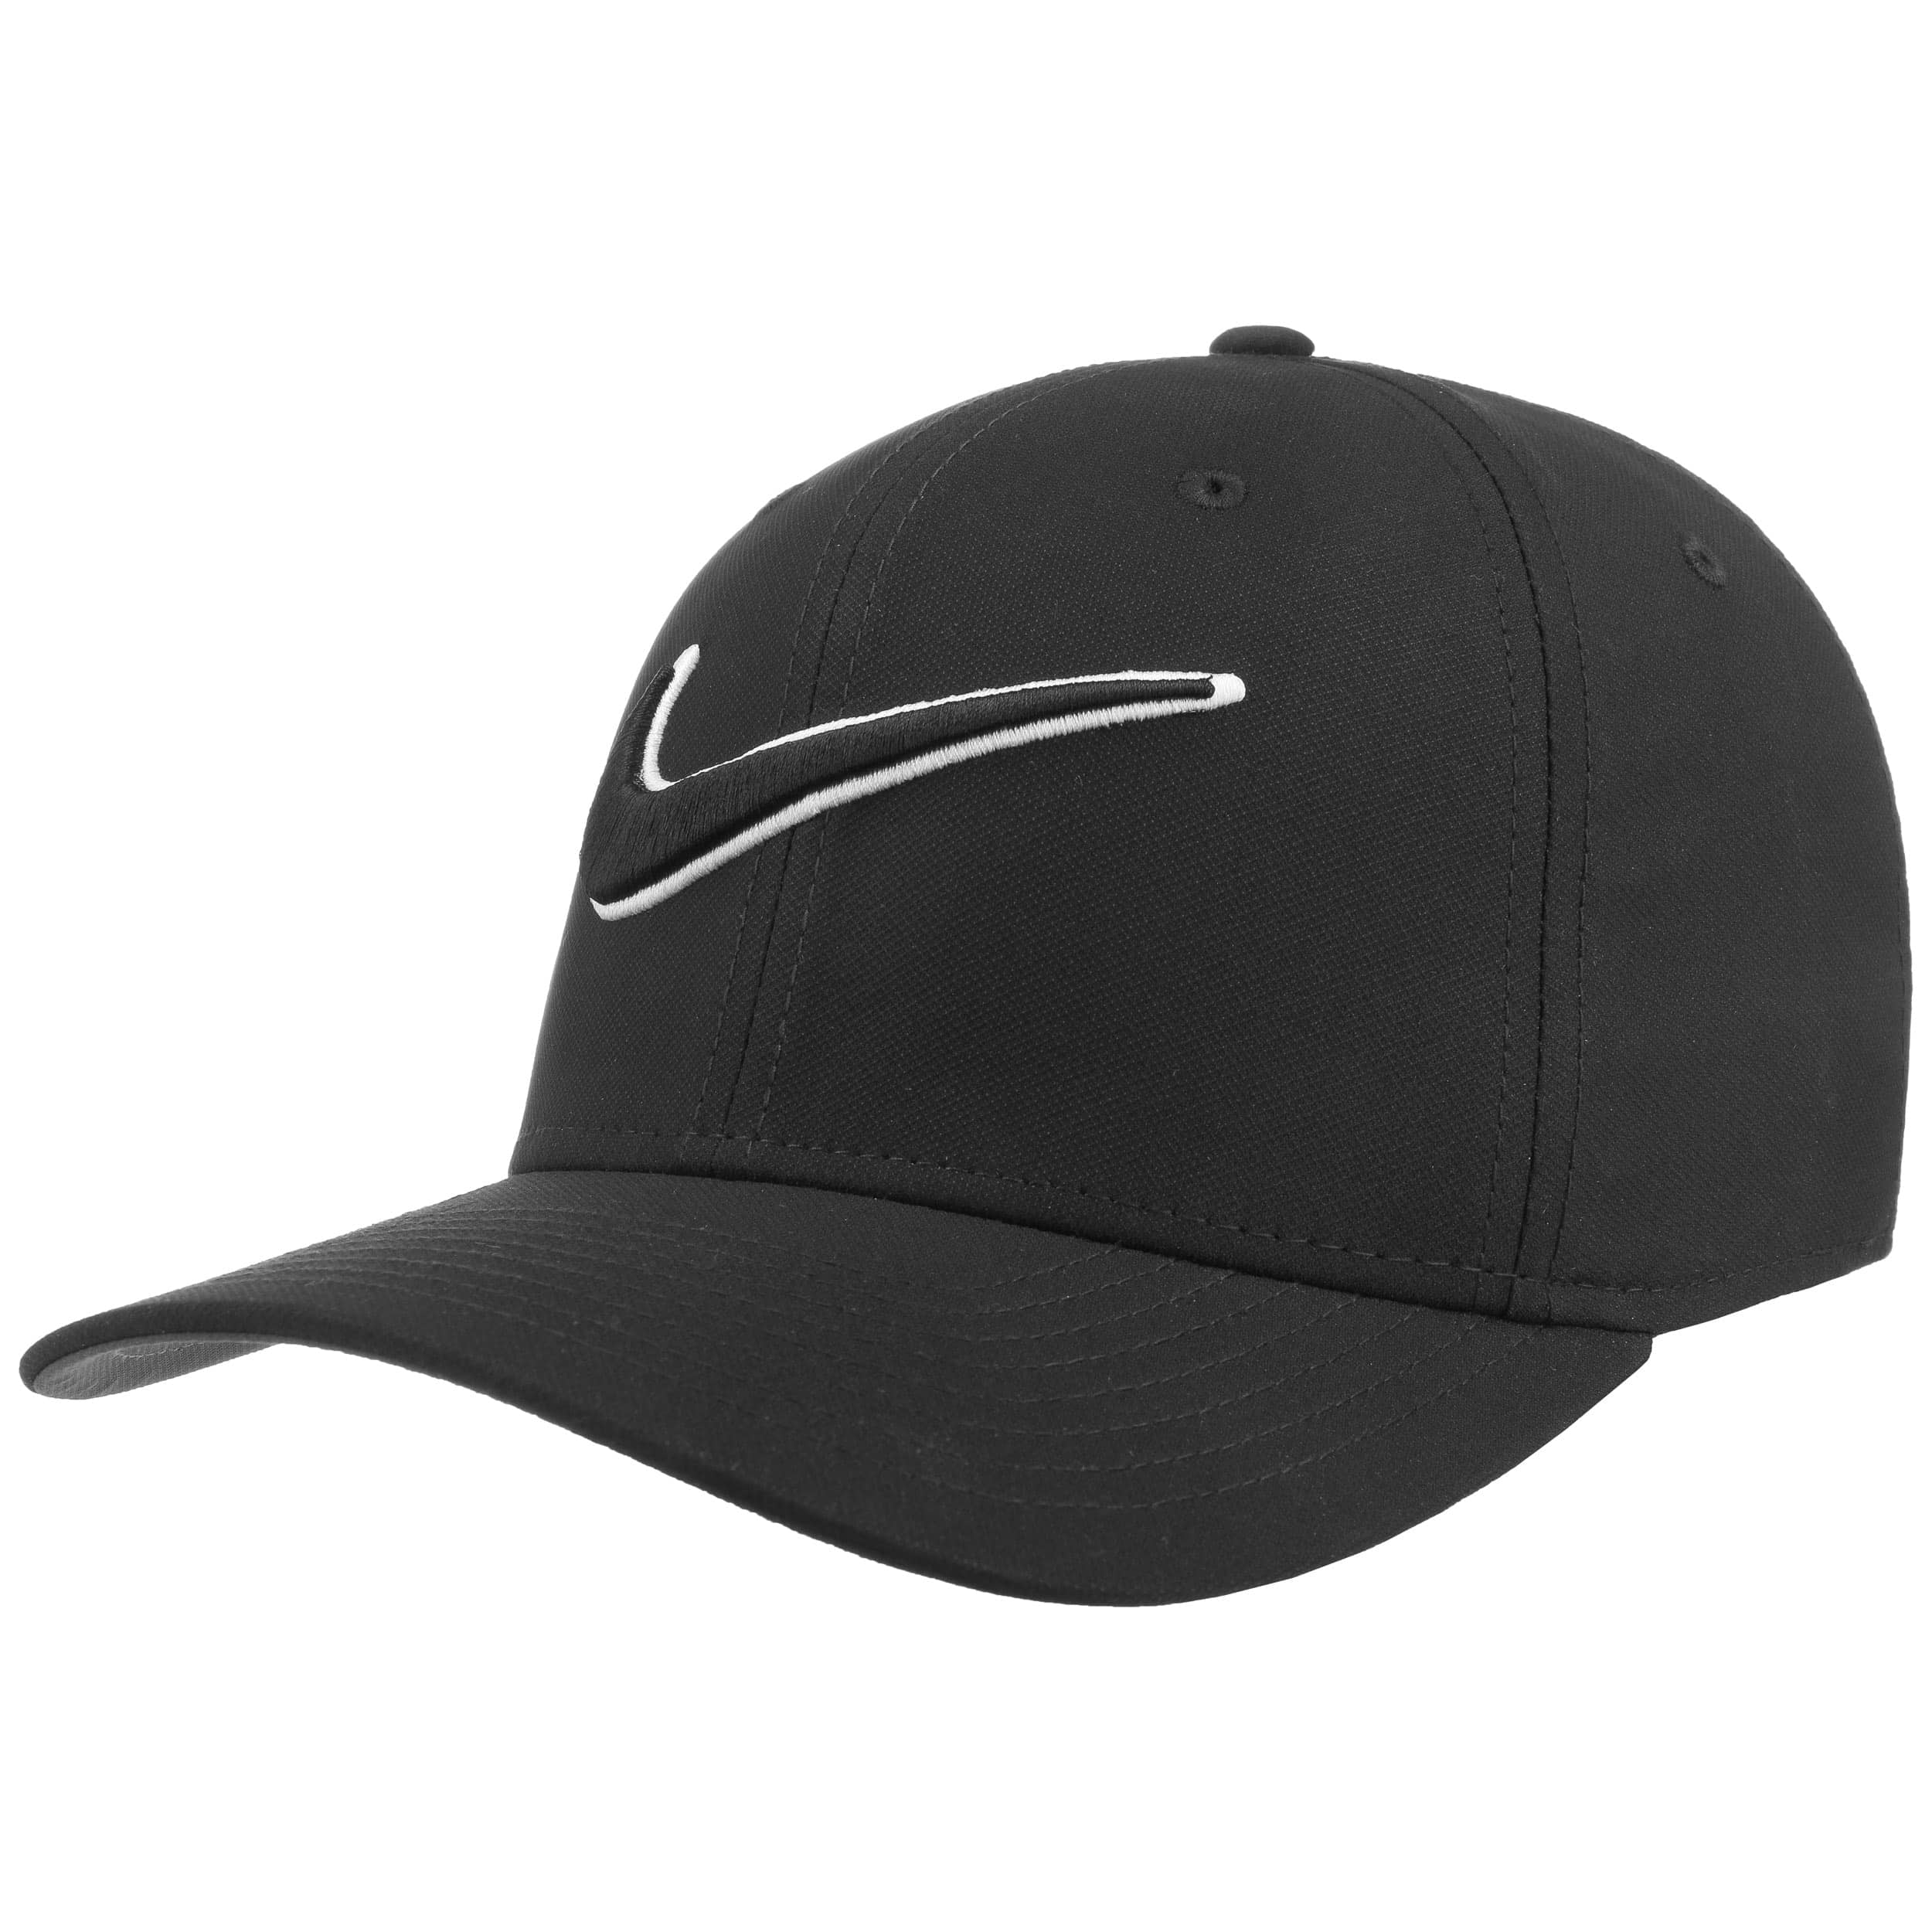 c0559d4572e ... Golf Classic 99 Performance Cap by Nike - white 6